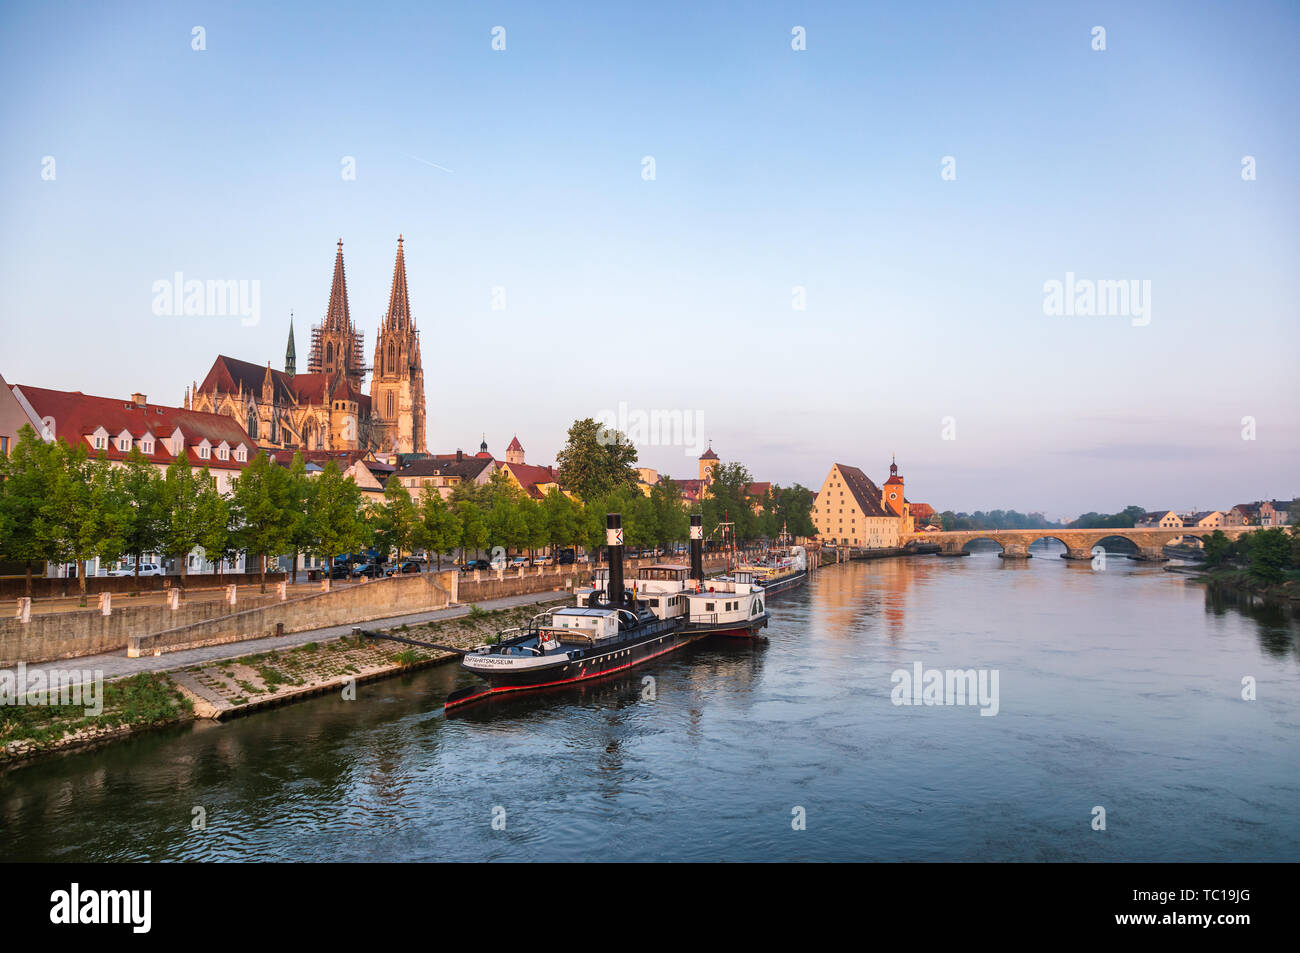 Regensburg cityscape as viewed from the Eiserne Brücke bridge with Donau-Schiffahrts-Museum on moored ships, St. Peter's Cathedral (Regensburger Dom)  Stock Photo